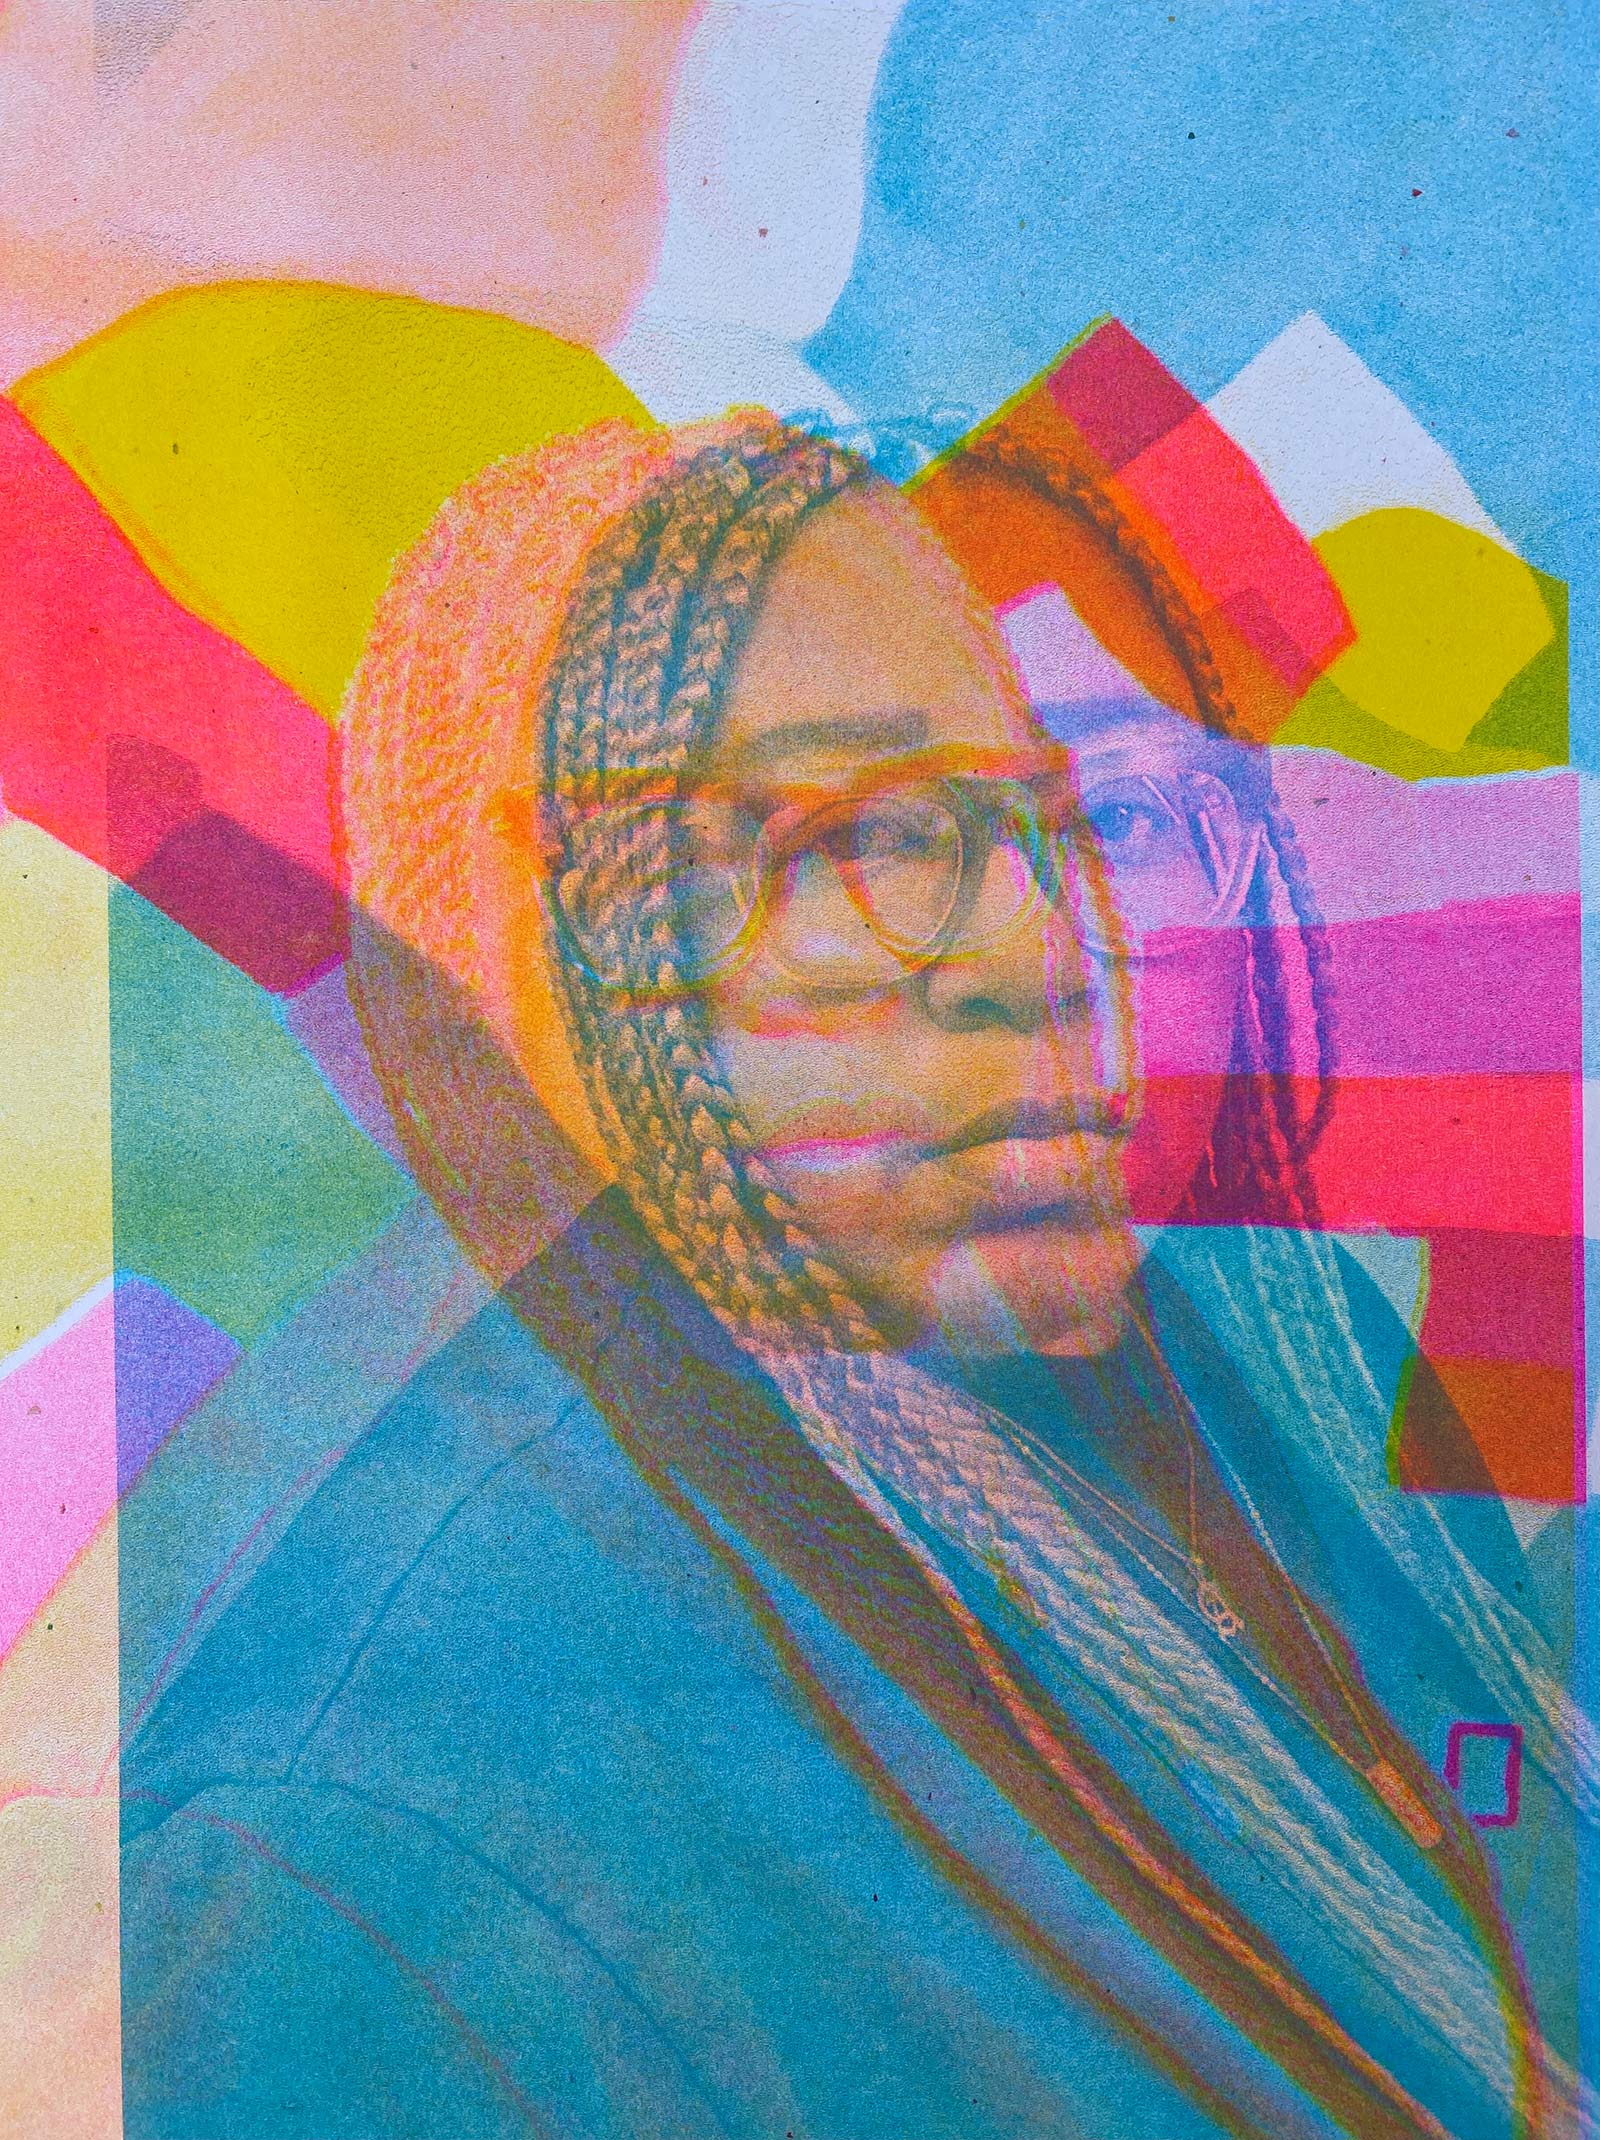 a Risograph self-portrait of artist Adee Roberson, a Black woman with long light brown braids, wearing thick clear glasses and a sweatshirt. Adee appears offset in the print surrounded by pink, blue, yellow, and orange shapes at varying opacities